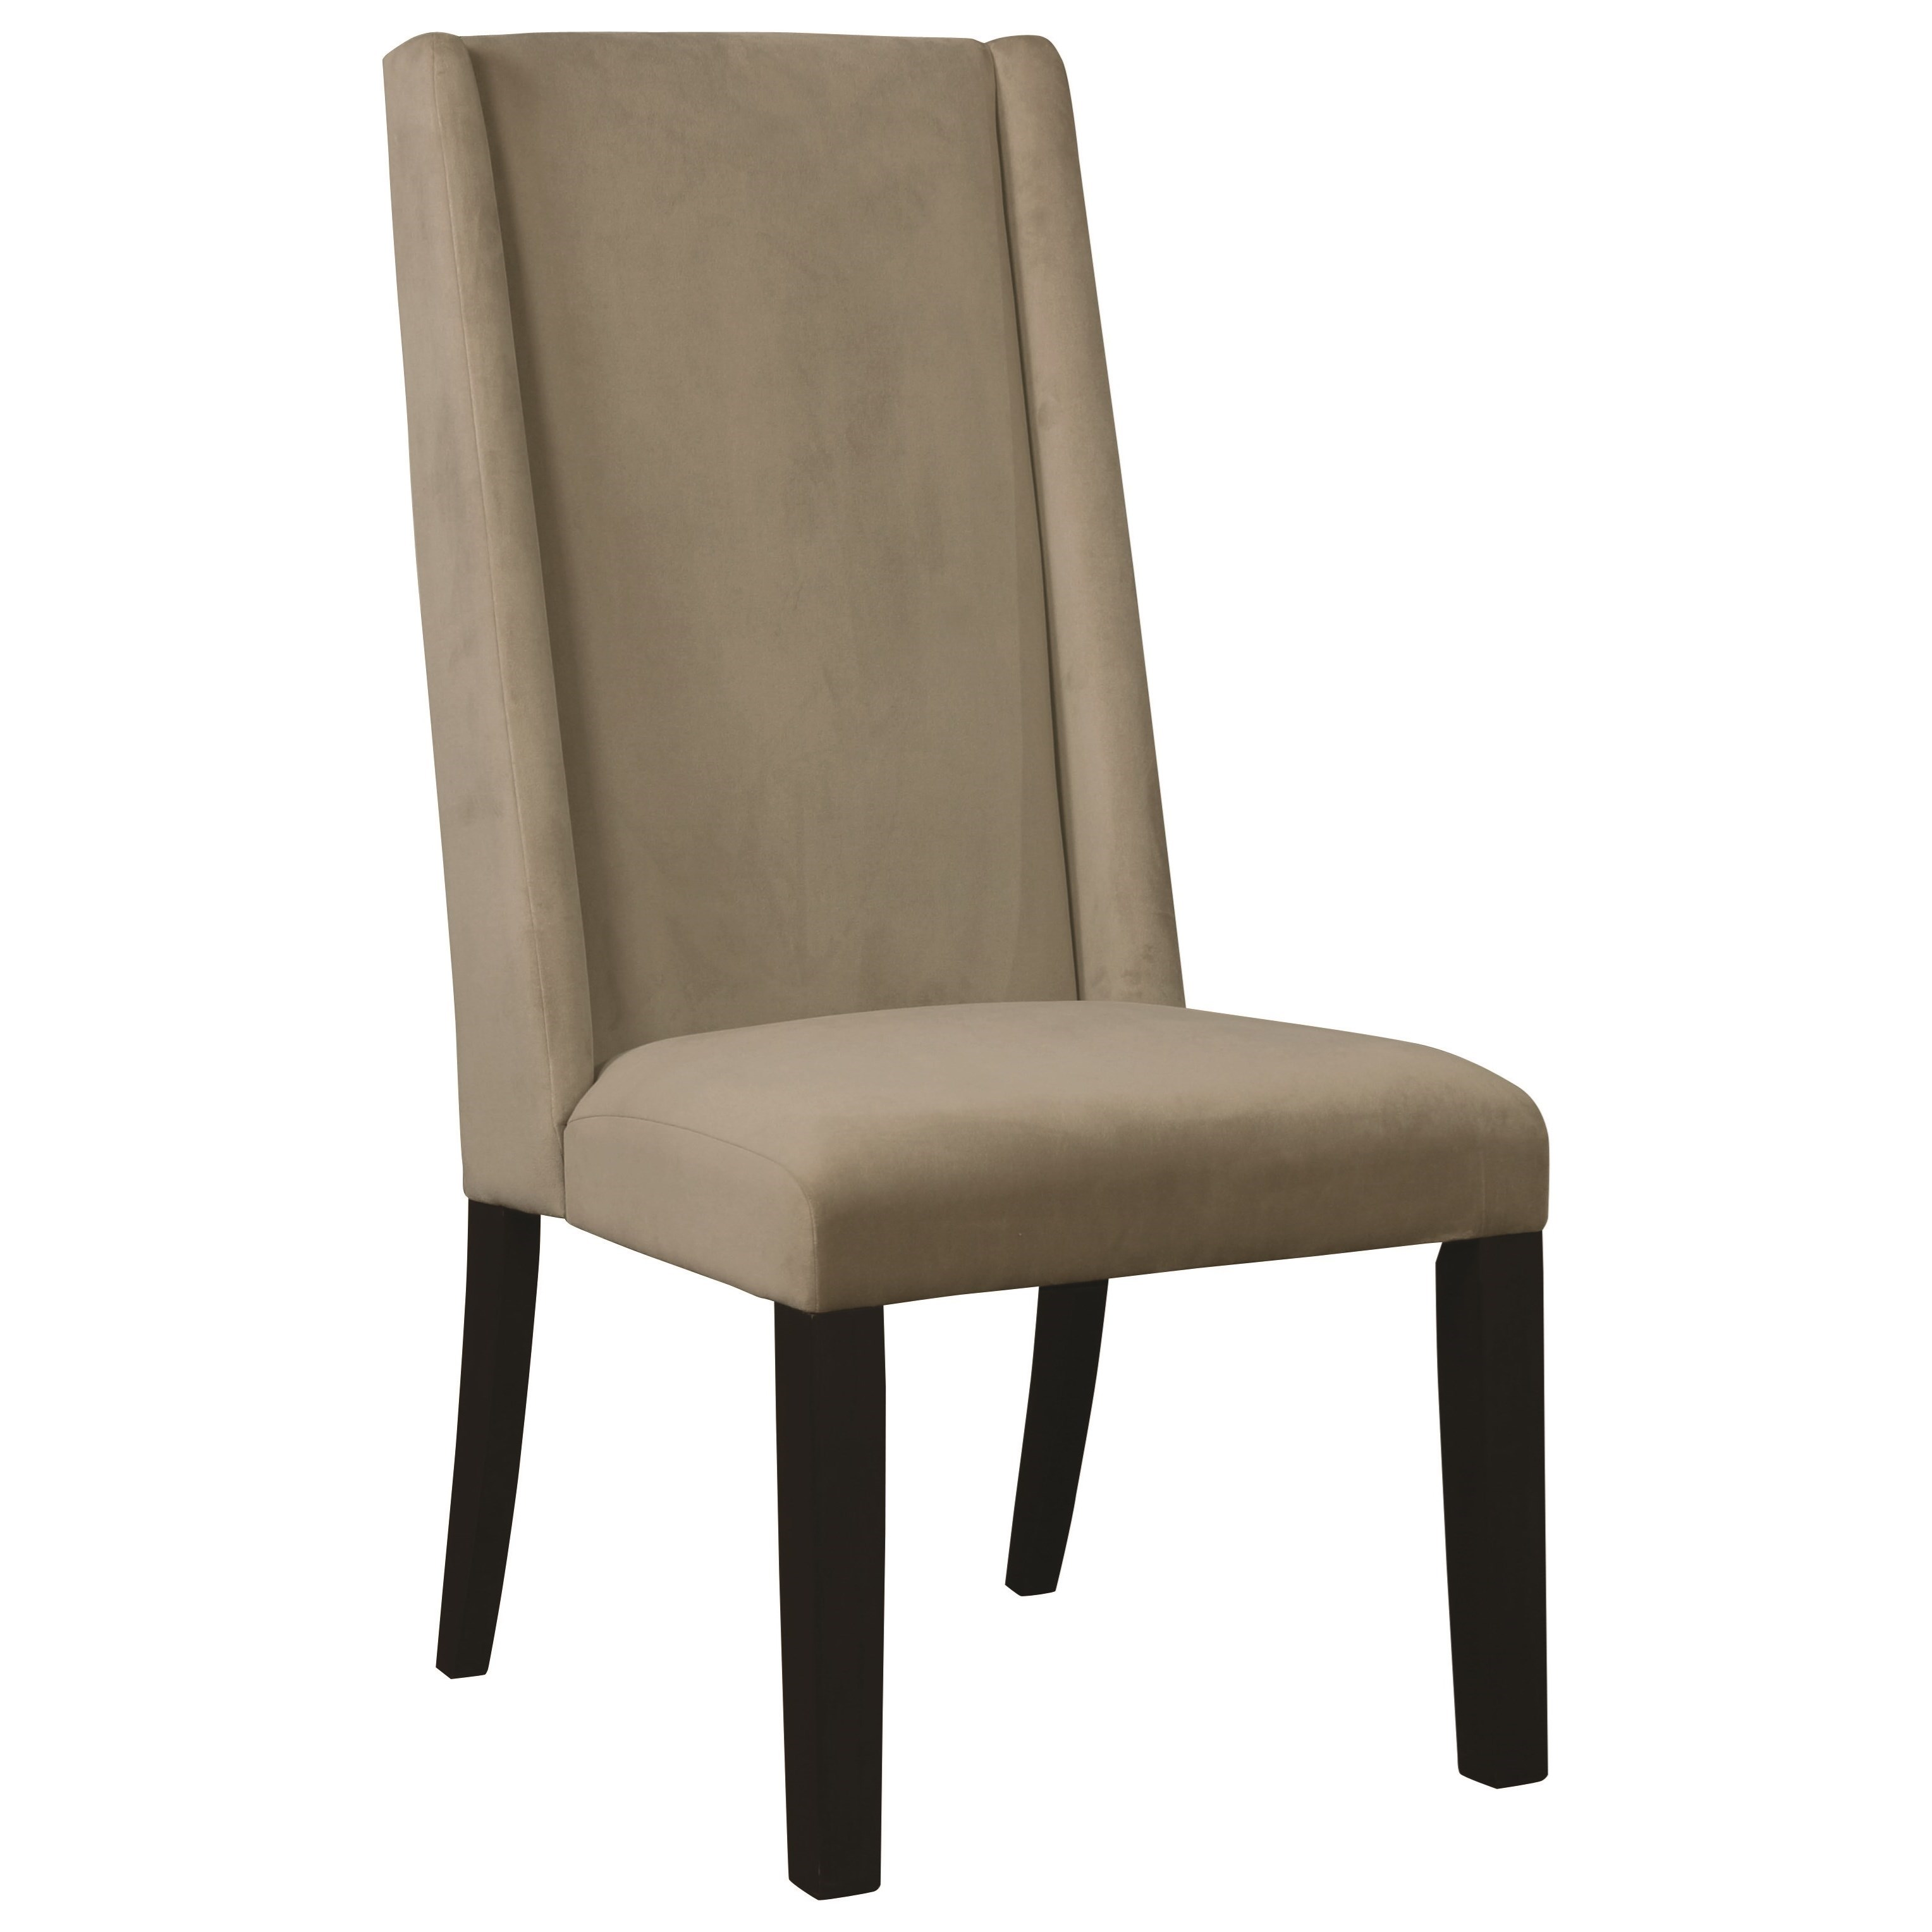 Scott Living 10312 Parson Chair - Item Number: 103130